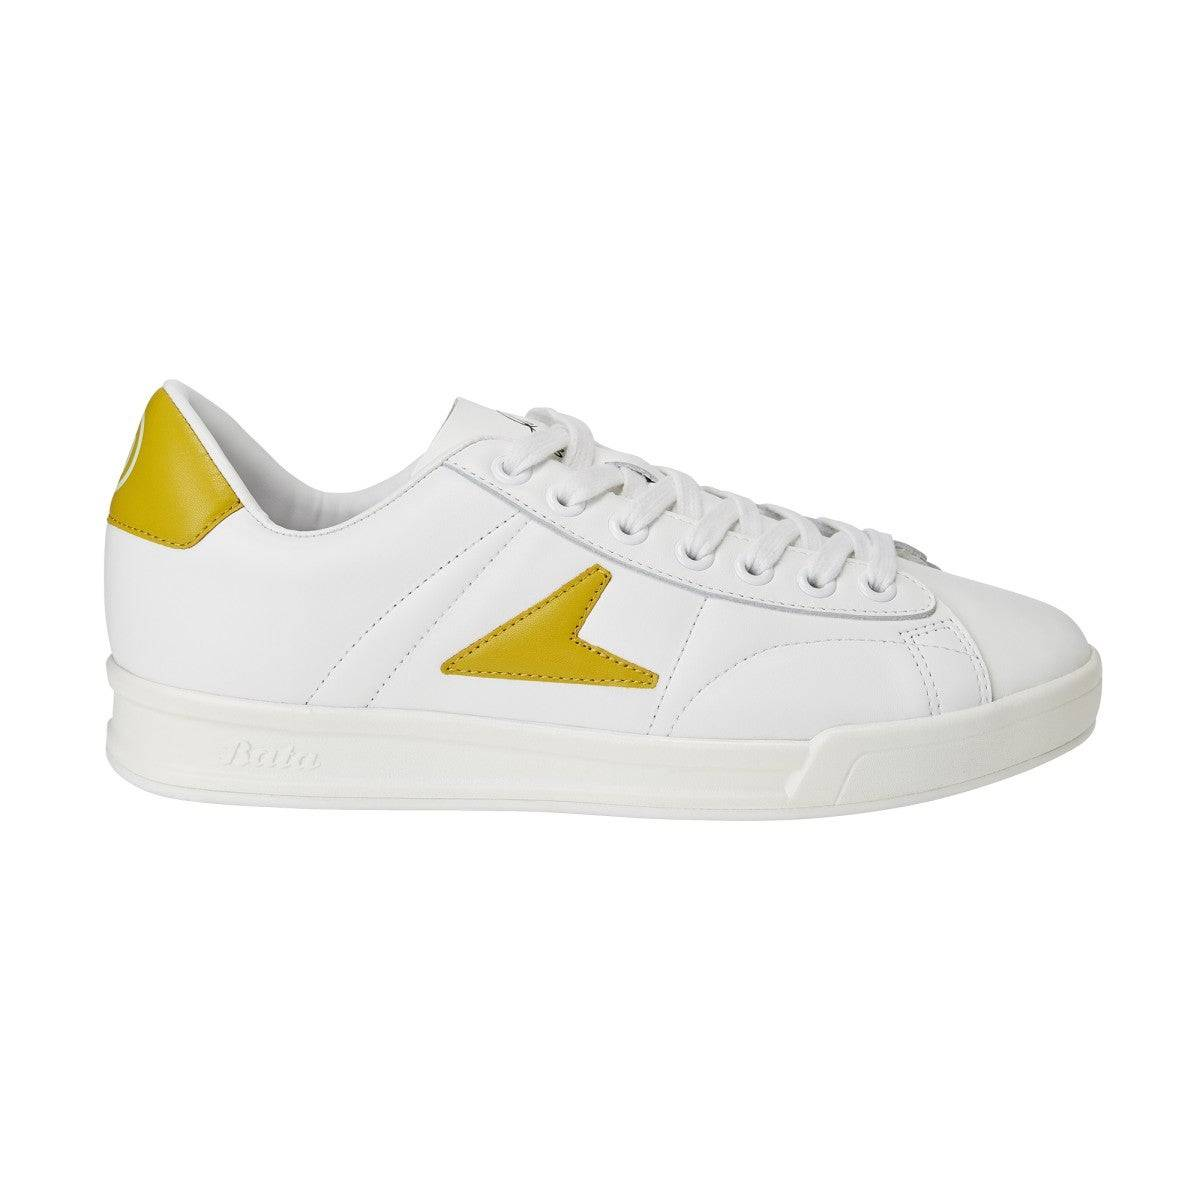 Wilson John Wooden Classic Low Top Shoes in White / Mustard Yellow - Size: 8 M  - Unisex - White/Mustard Yellow - Size: 8 M